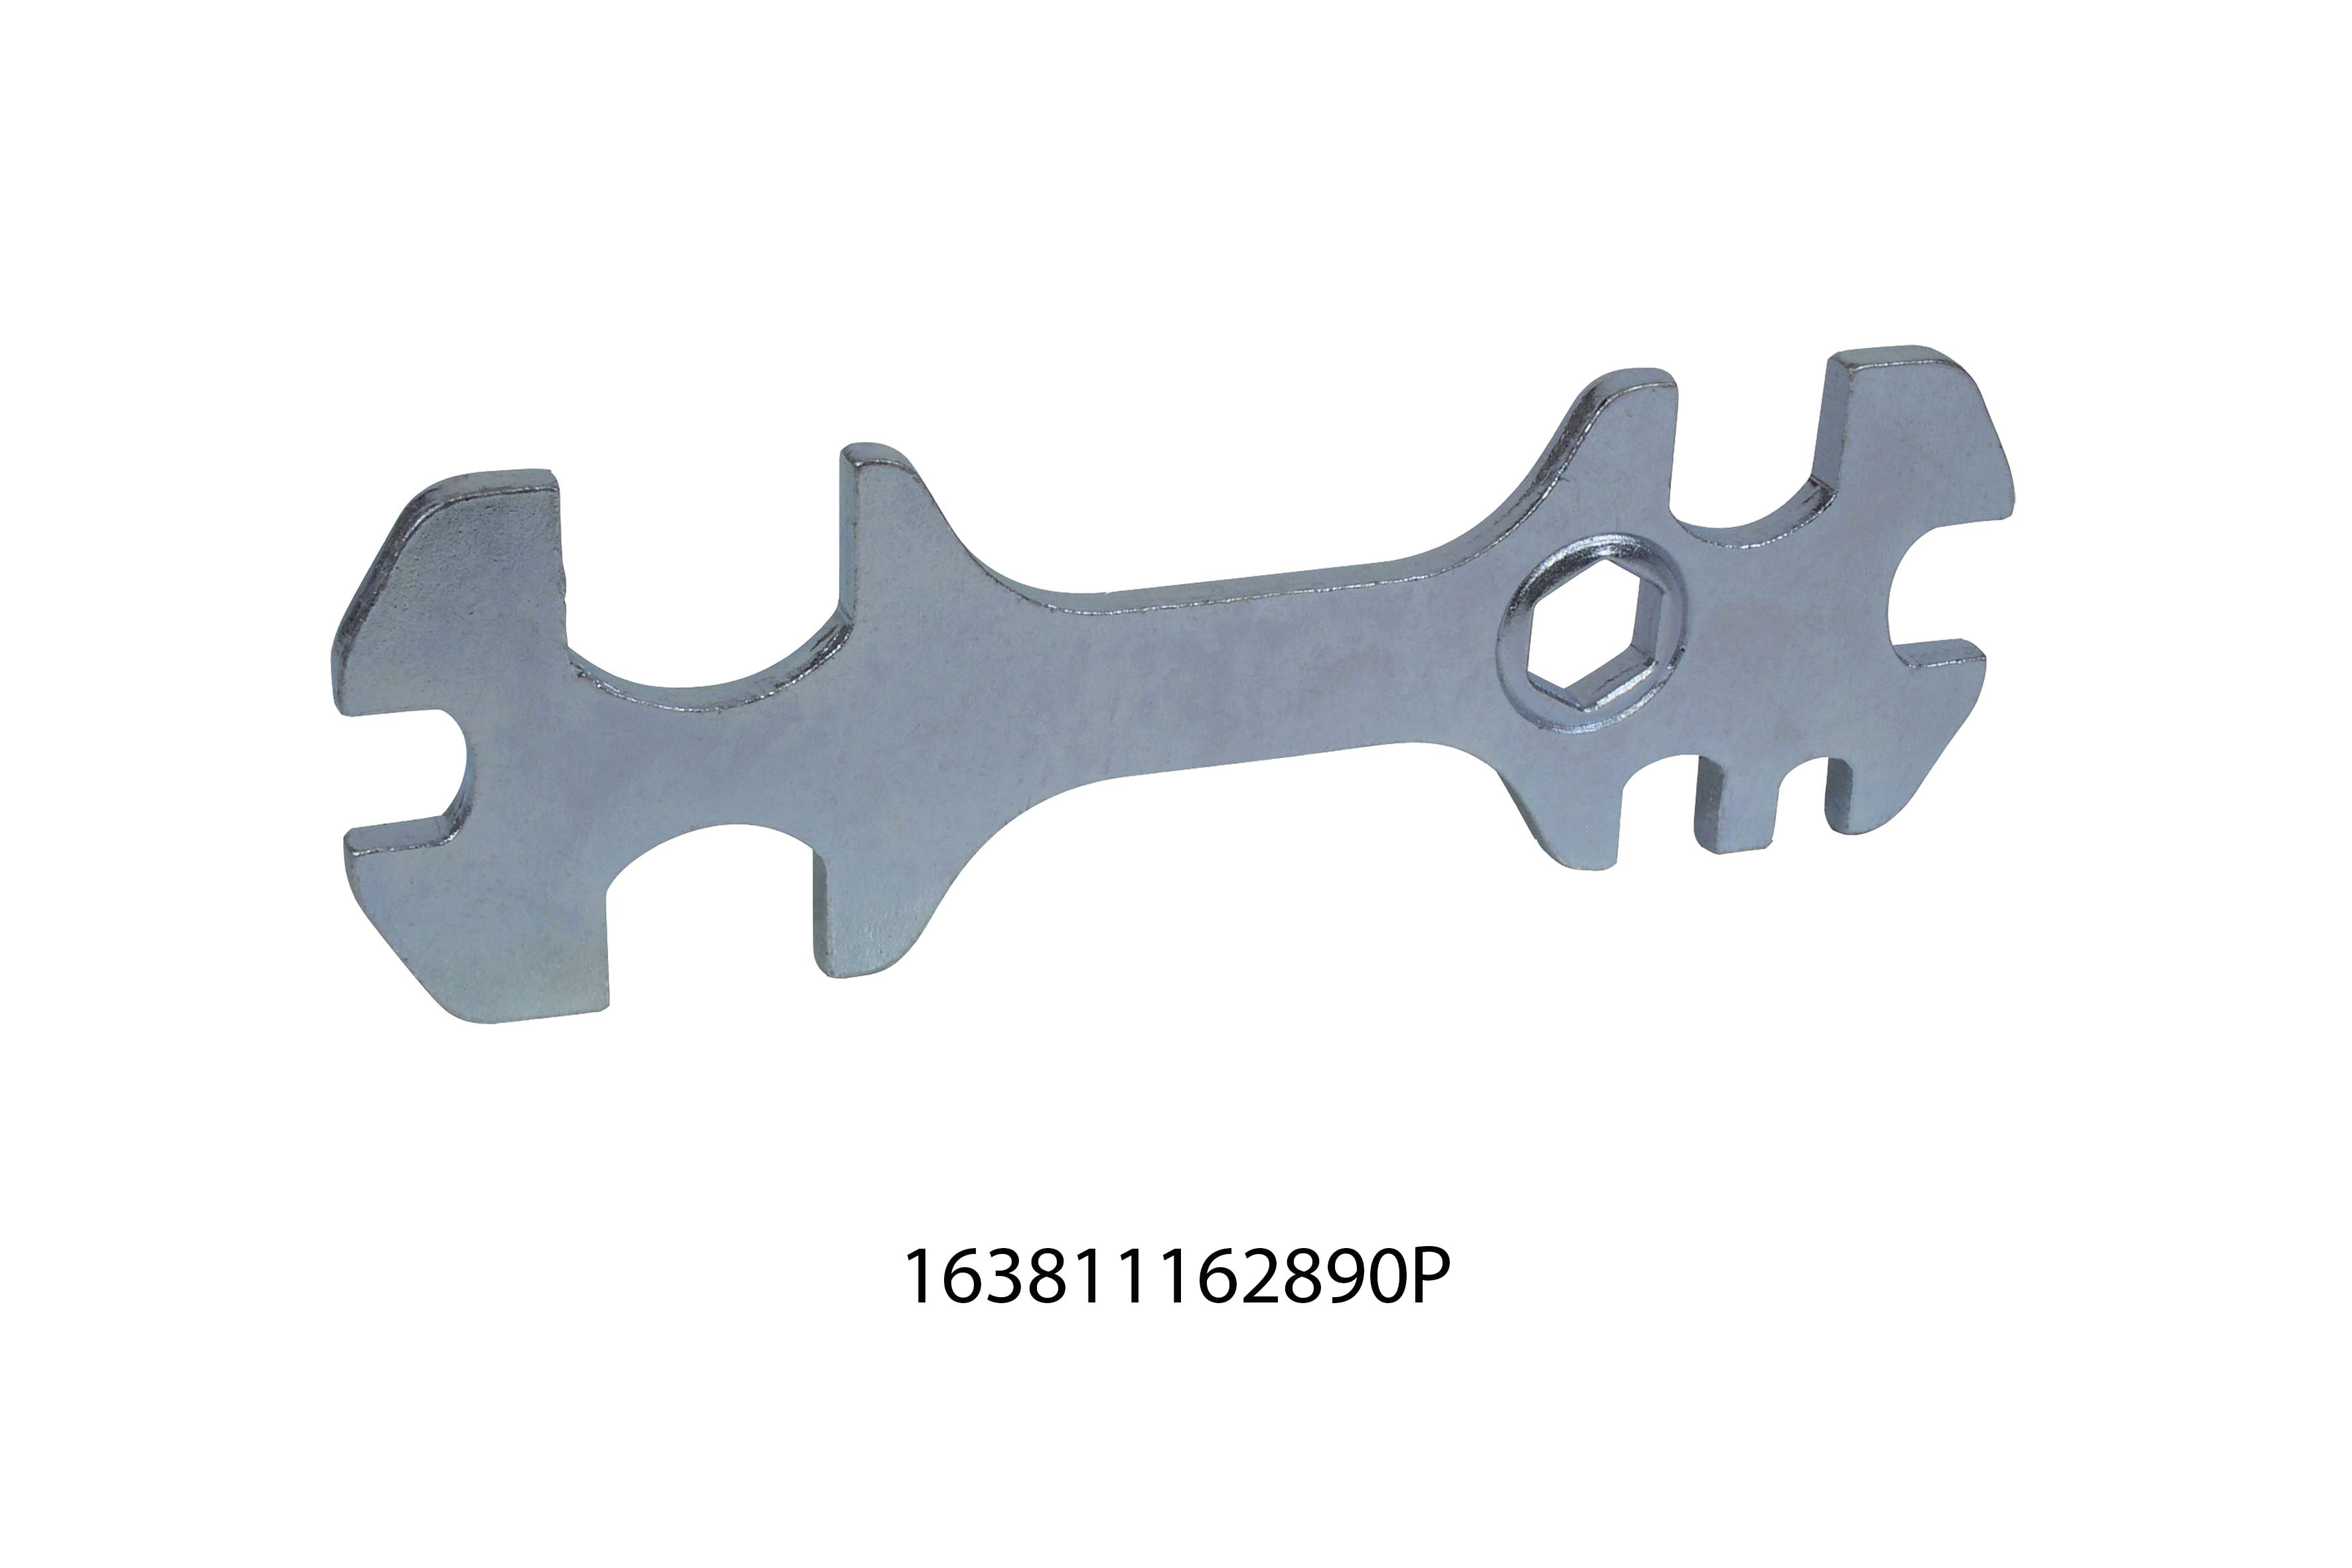 SPANNER page image